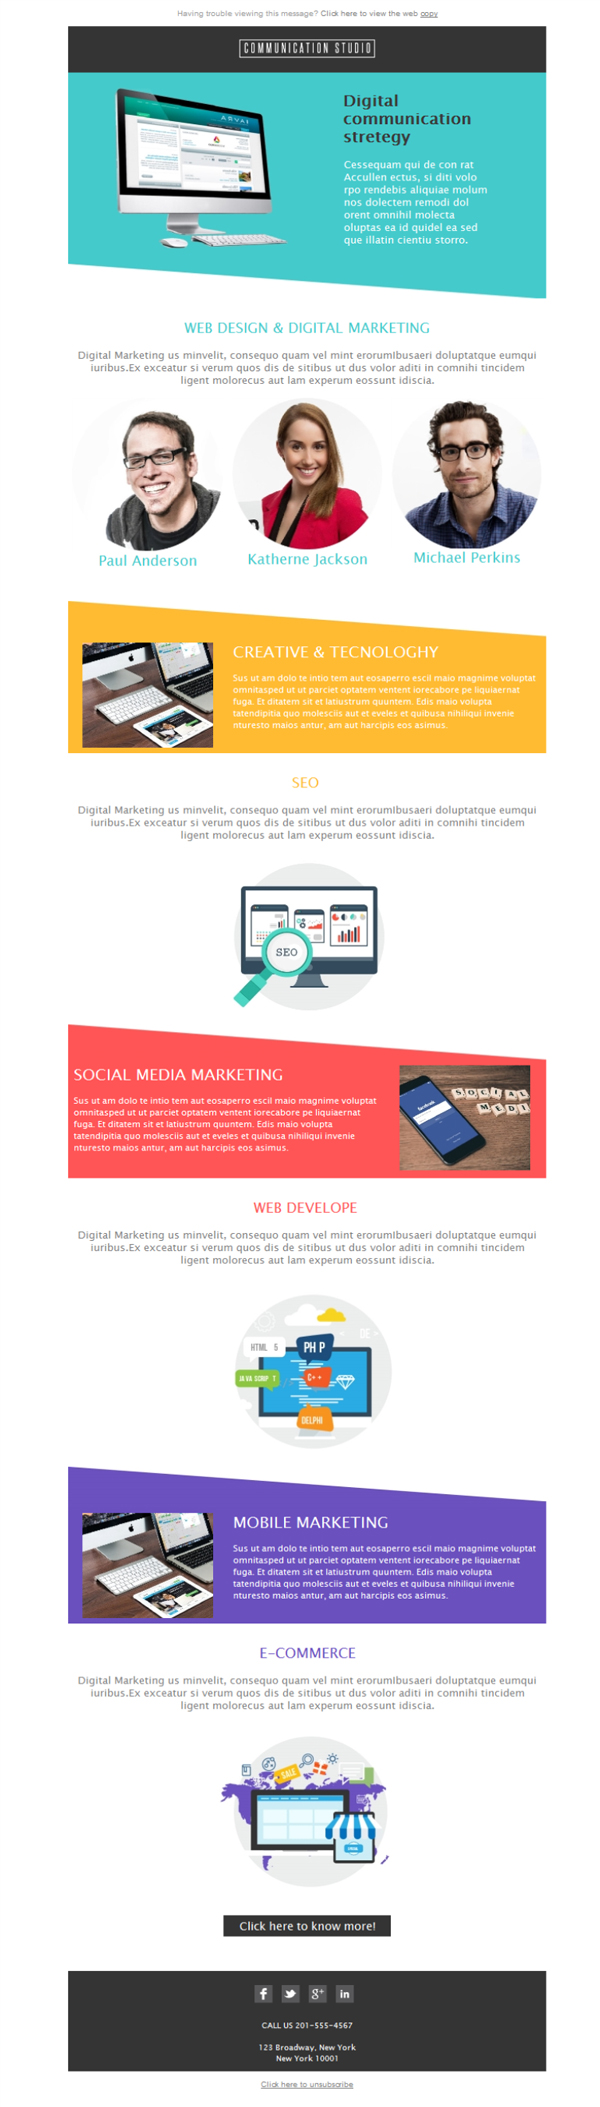 Templates Emailing Web Marketing Studio Sarbacane